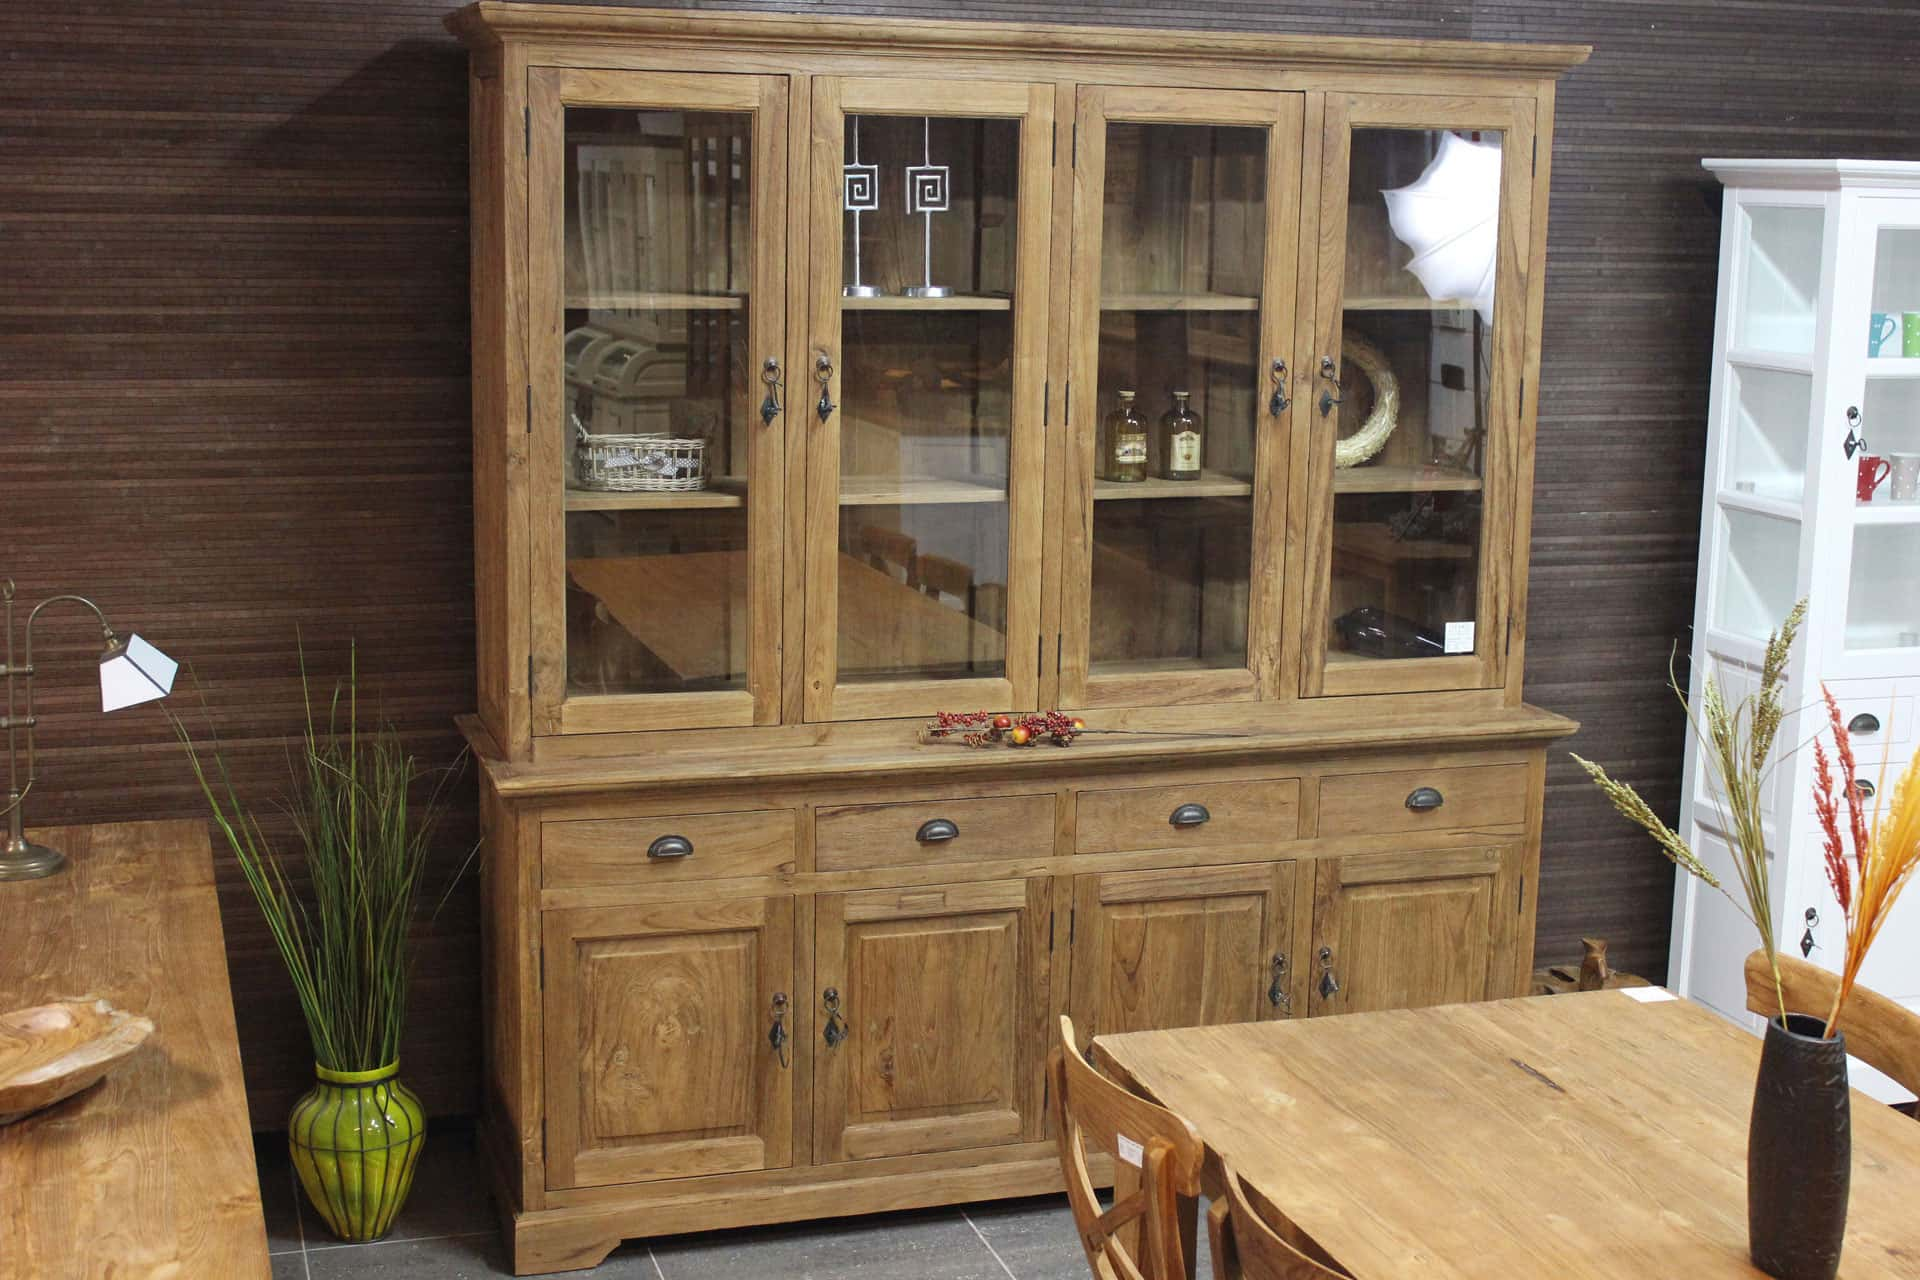 Teak Asli 210I Old | rural teak buffet cabinet with coving and hinged doors. Rustic display cabinet in solid brushed old teak - TEAK2.